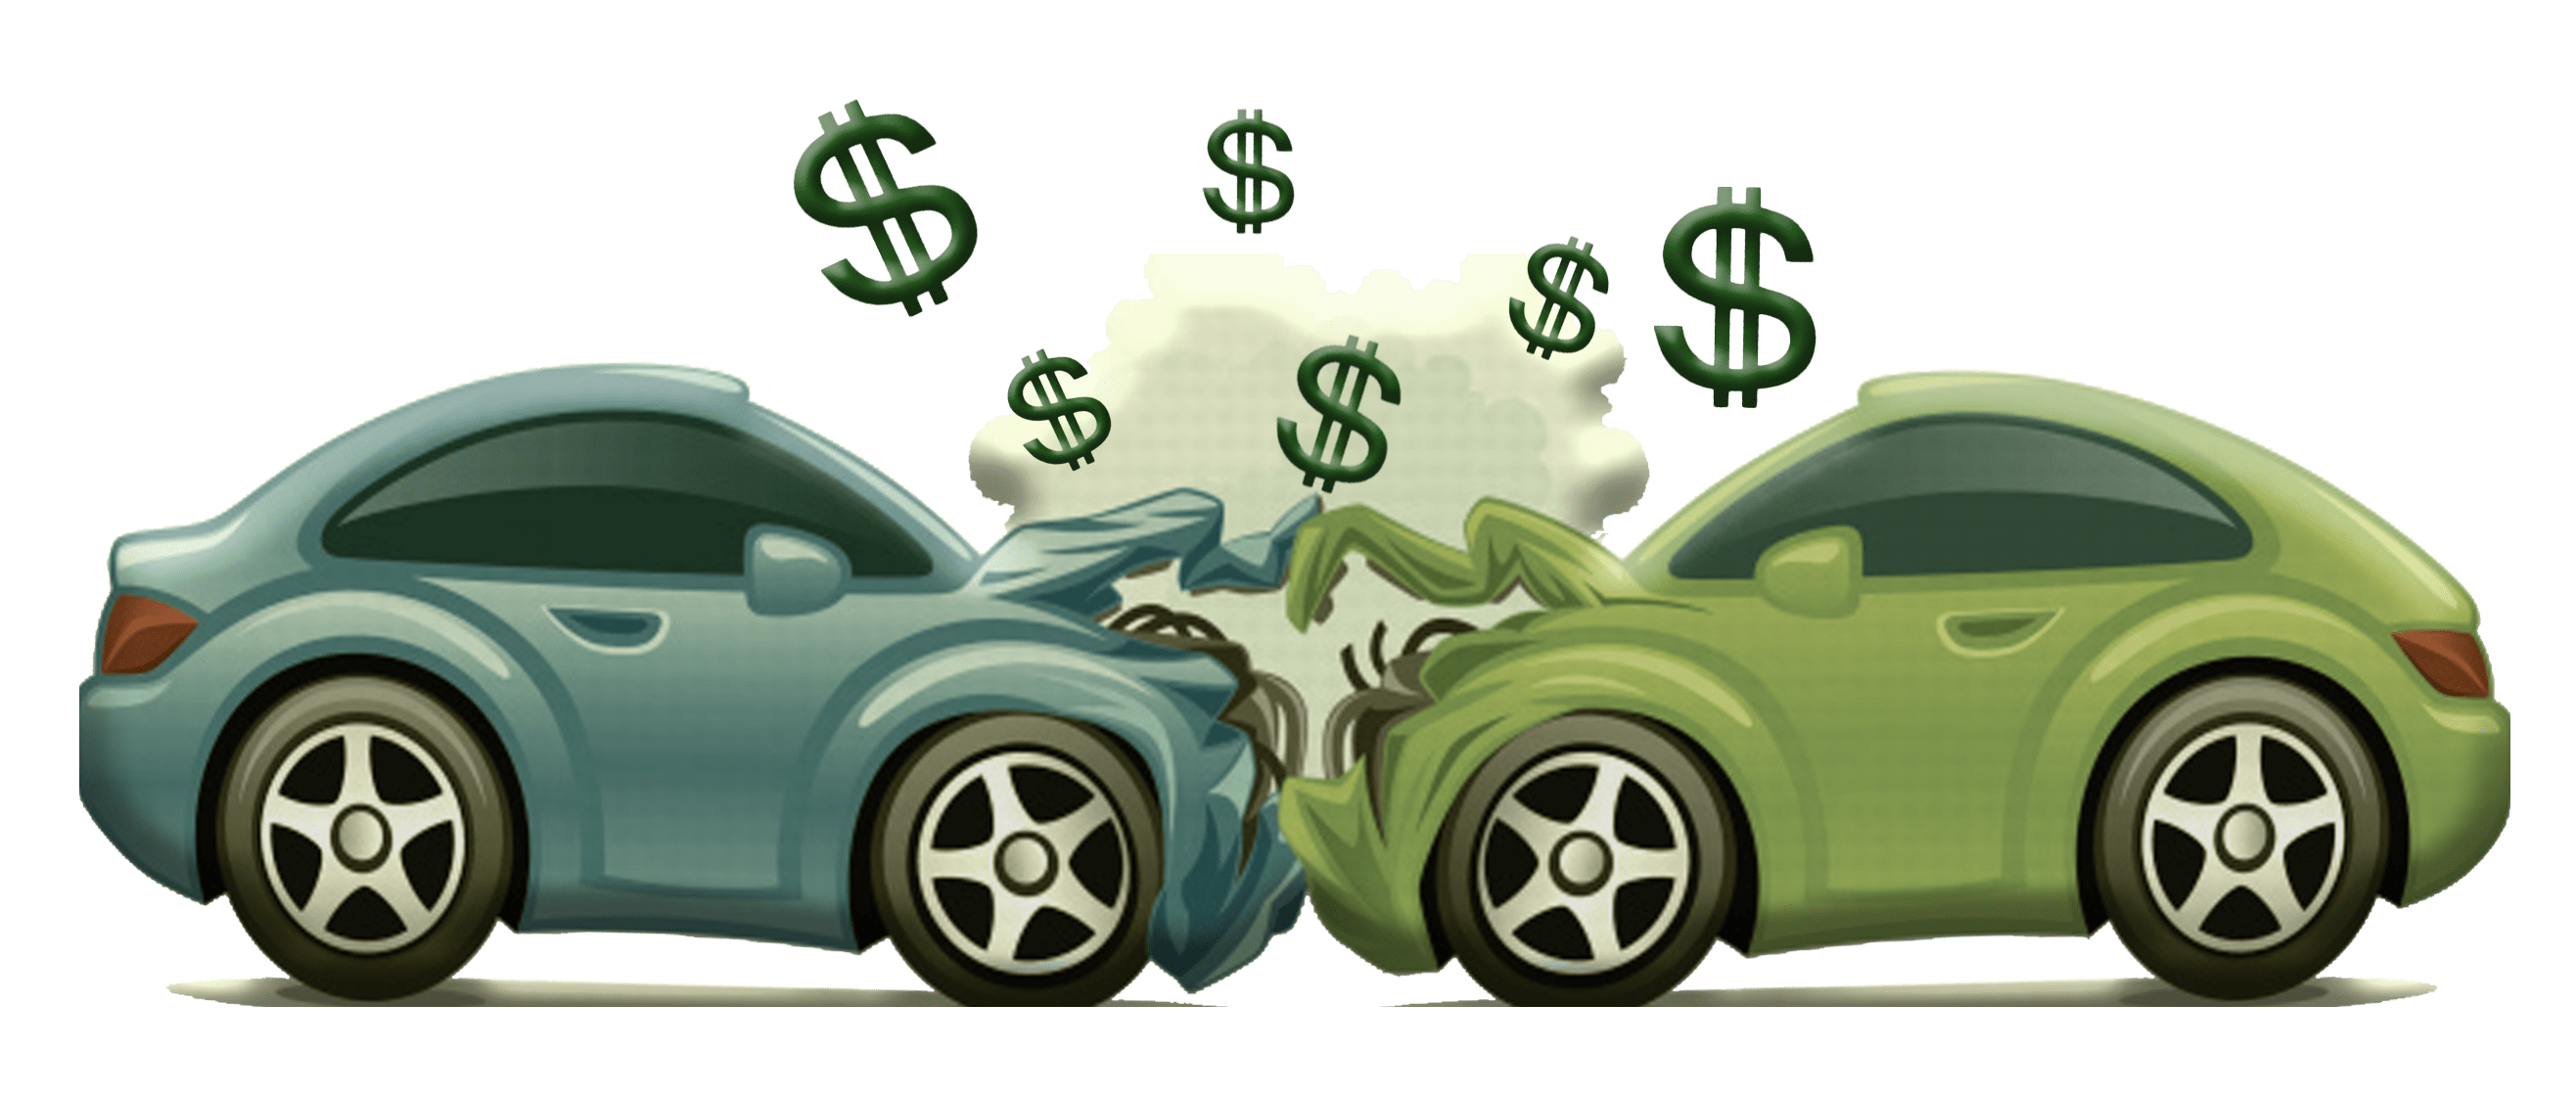 Auto Deductible Reimbursement